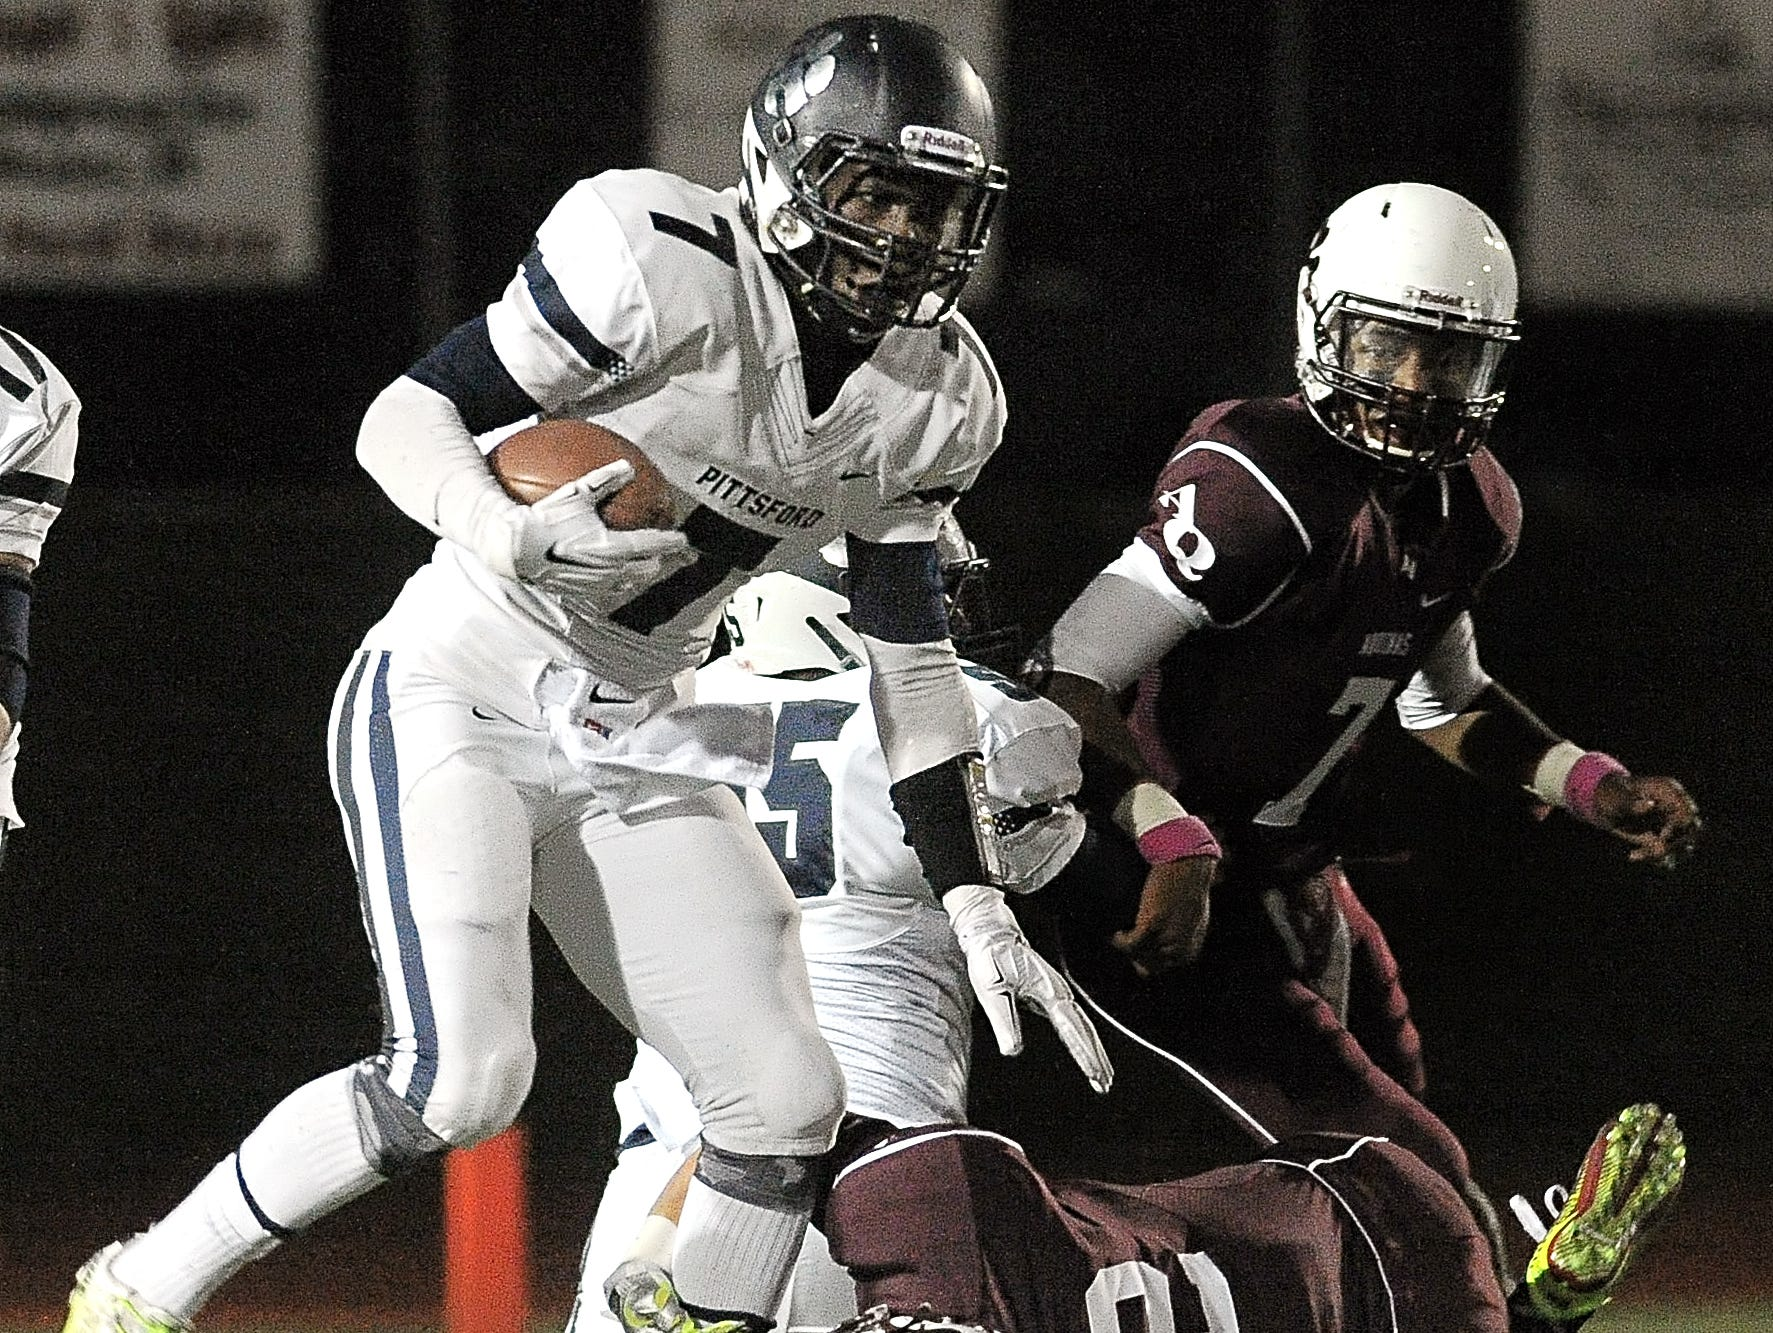 Pittsford's Josh Mack, shown here against Aquinas in 2014, carried a personal-high 49 carries last Friday against Orchard Park.